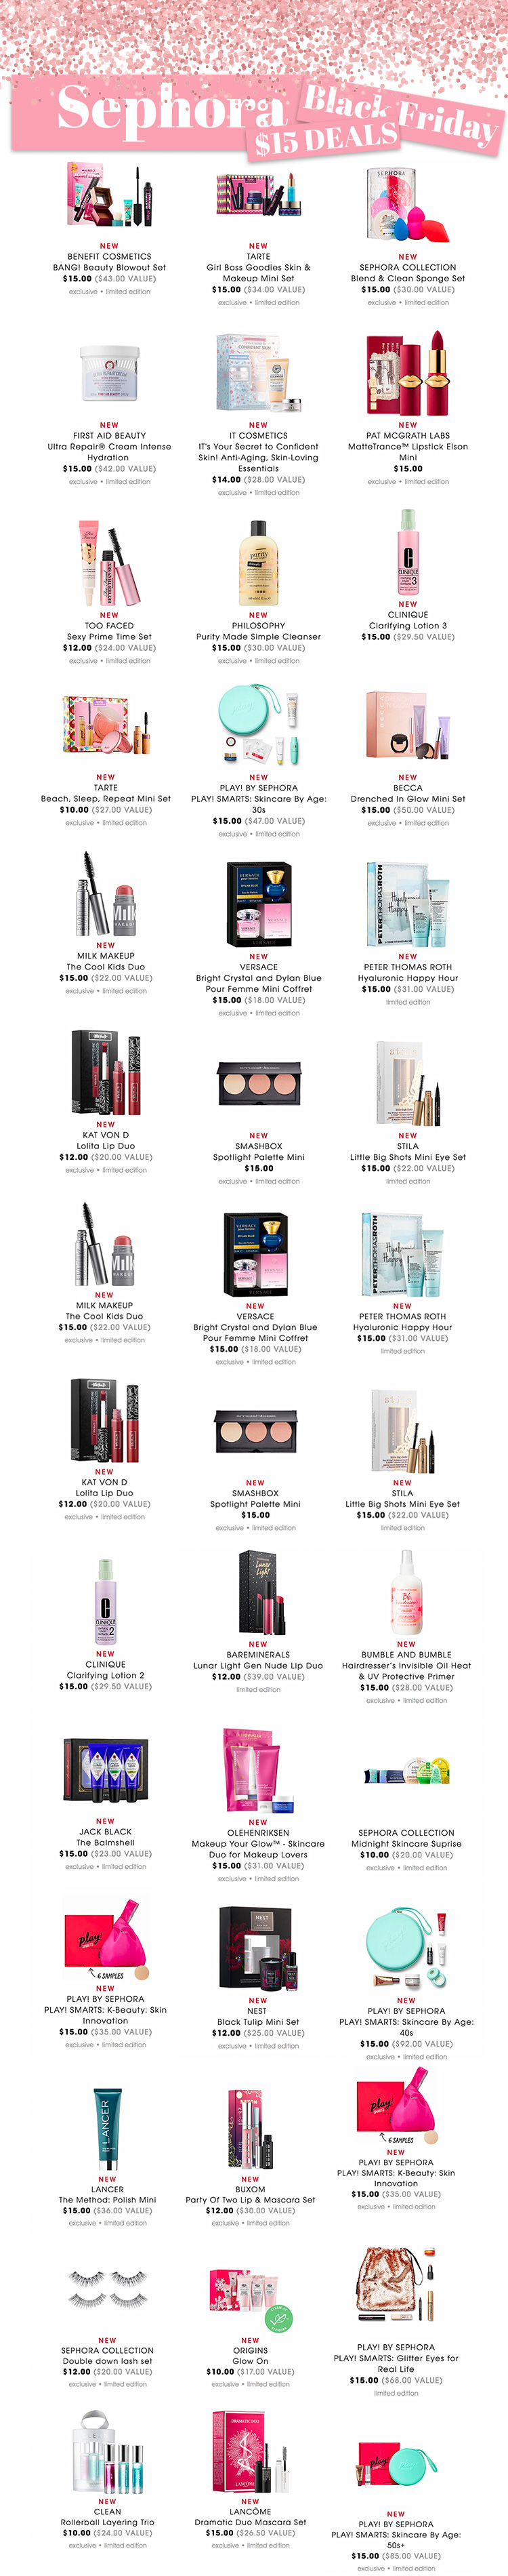 Sephora $15 Black Friday Deals 2018